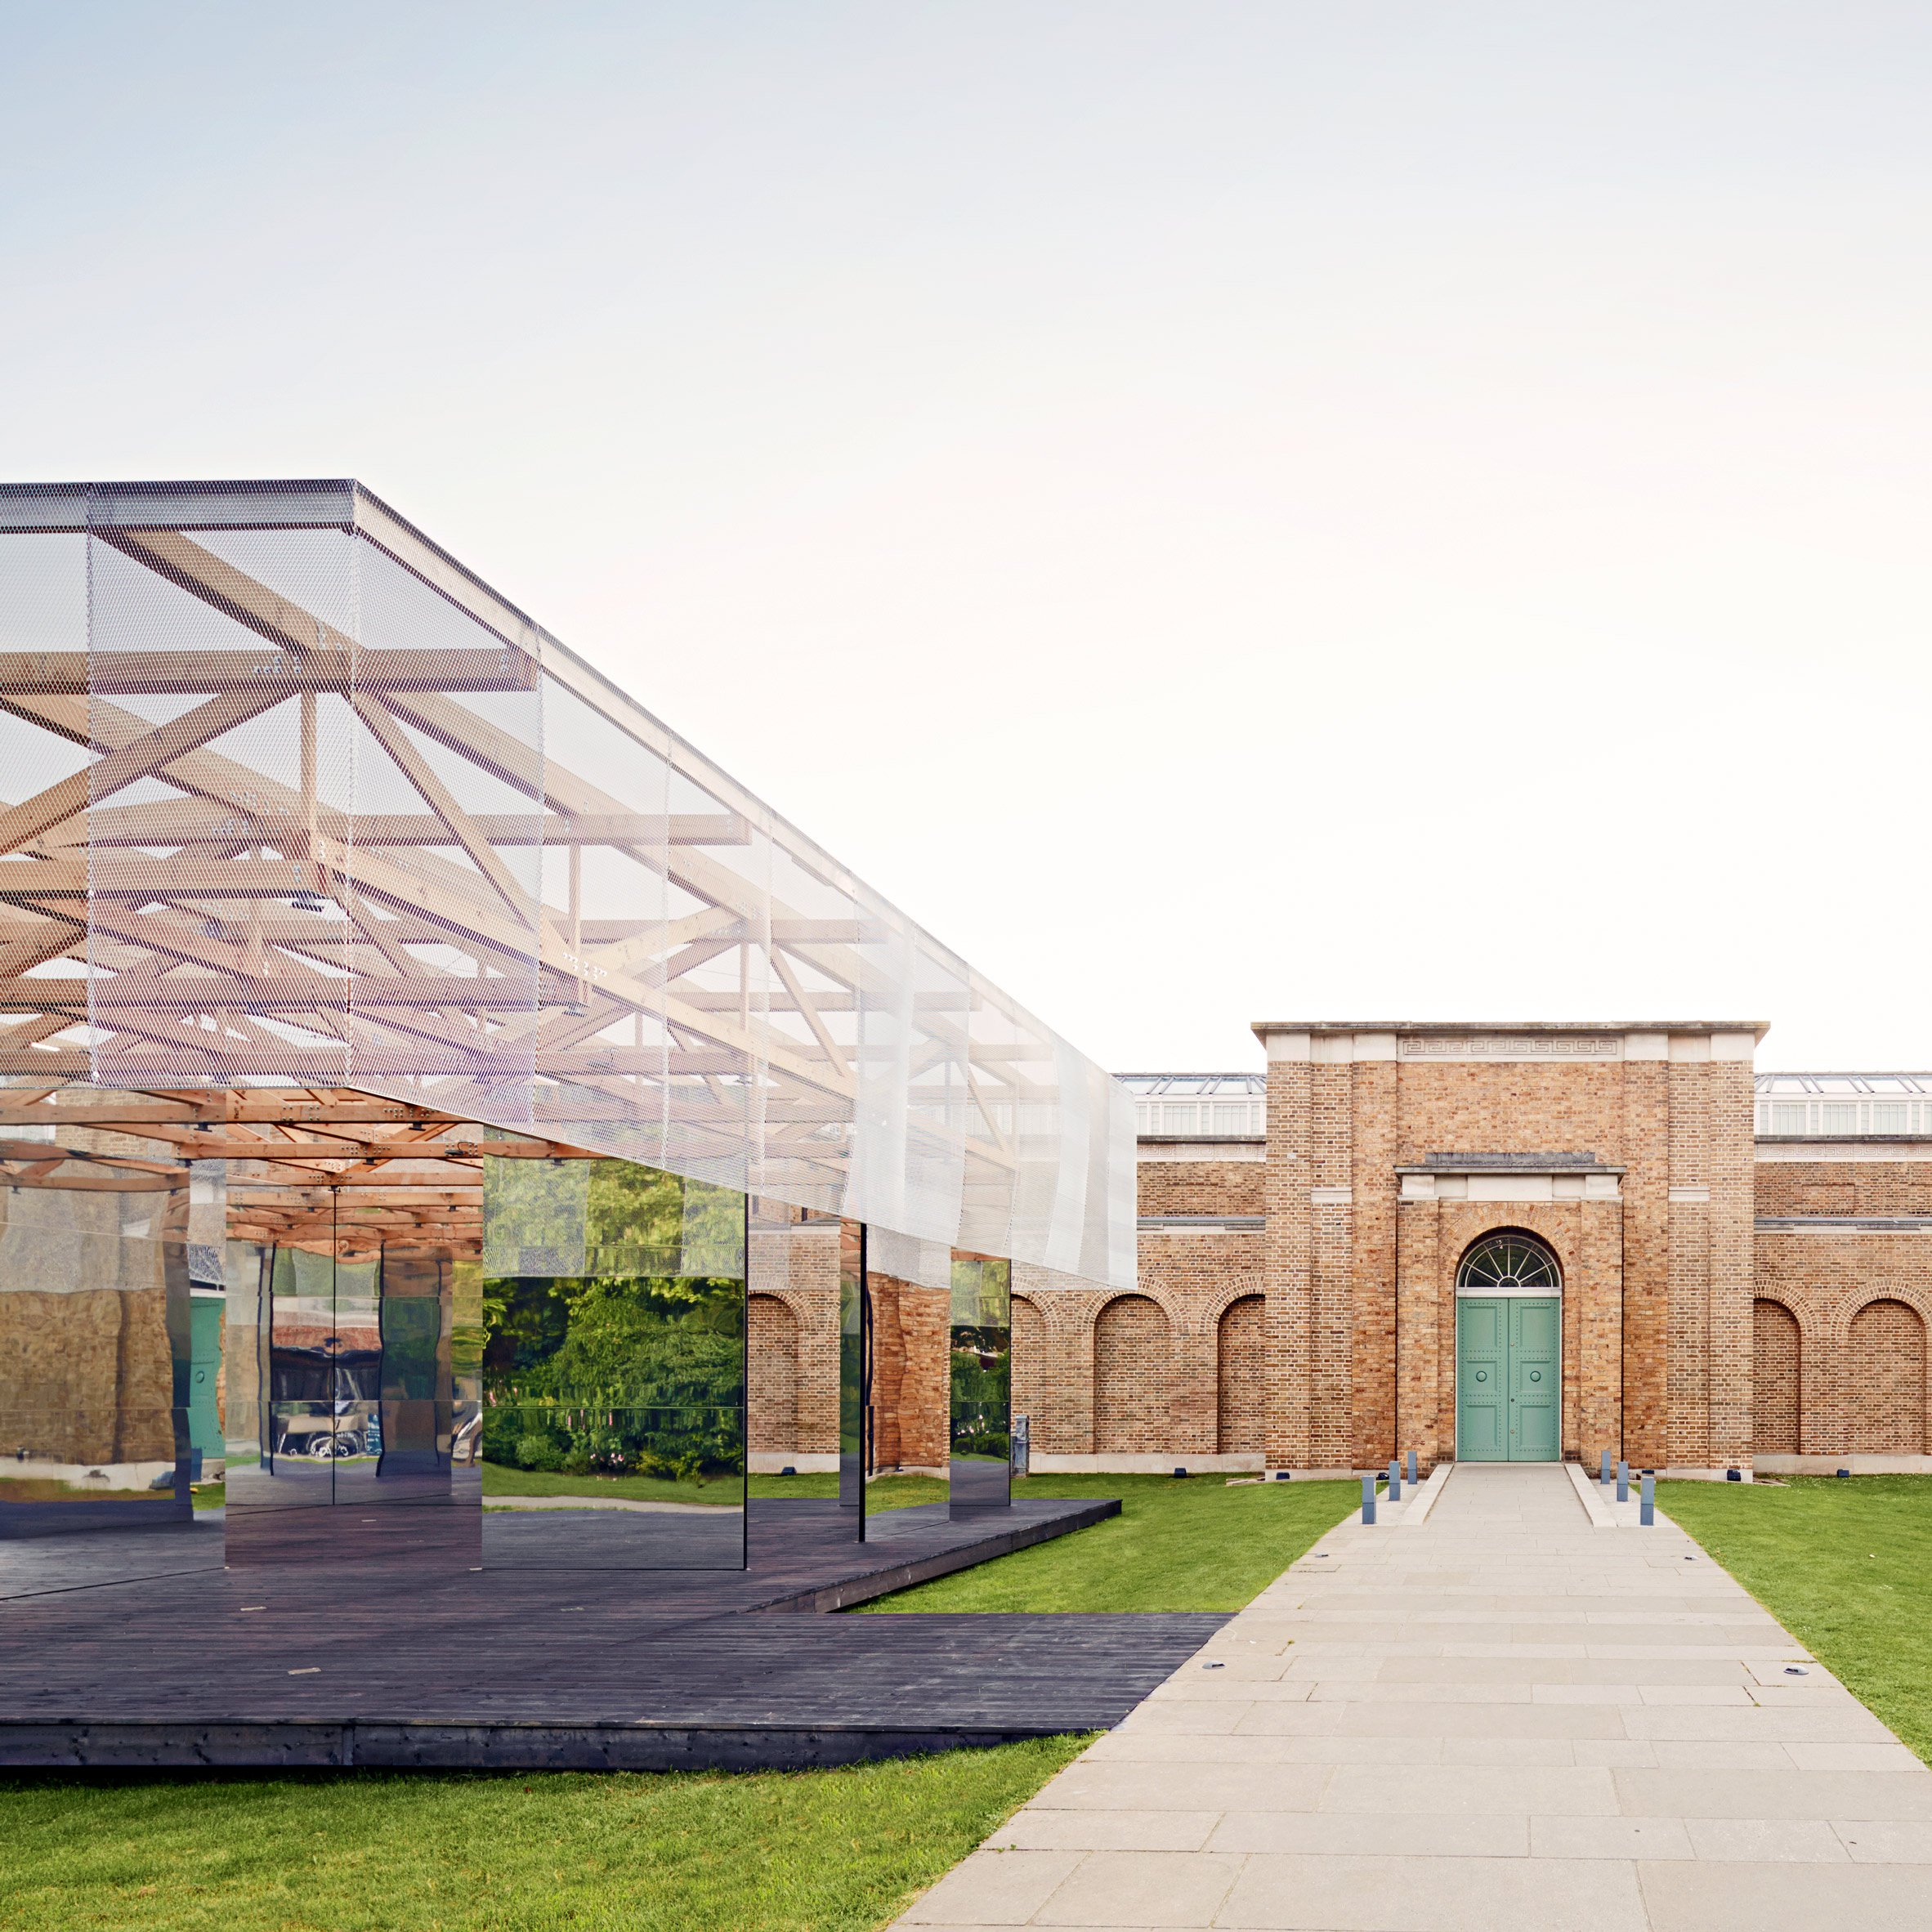 dezeen s guide to the best architecture design and tech events for 2018